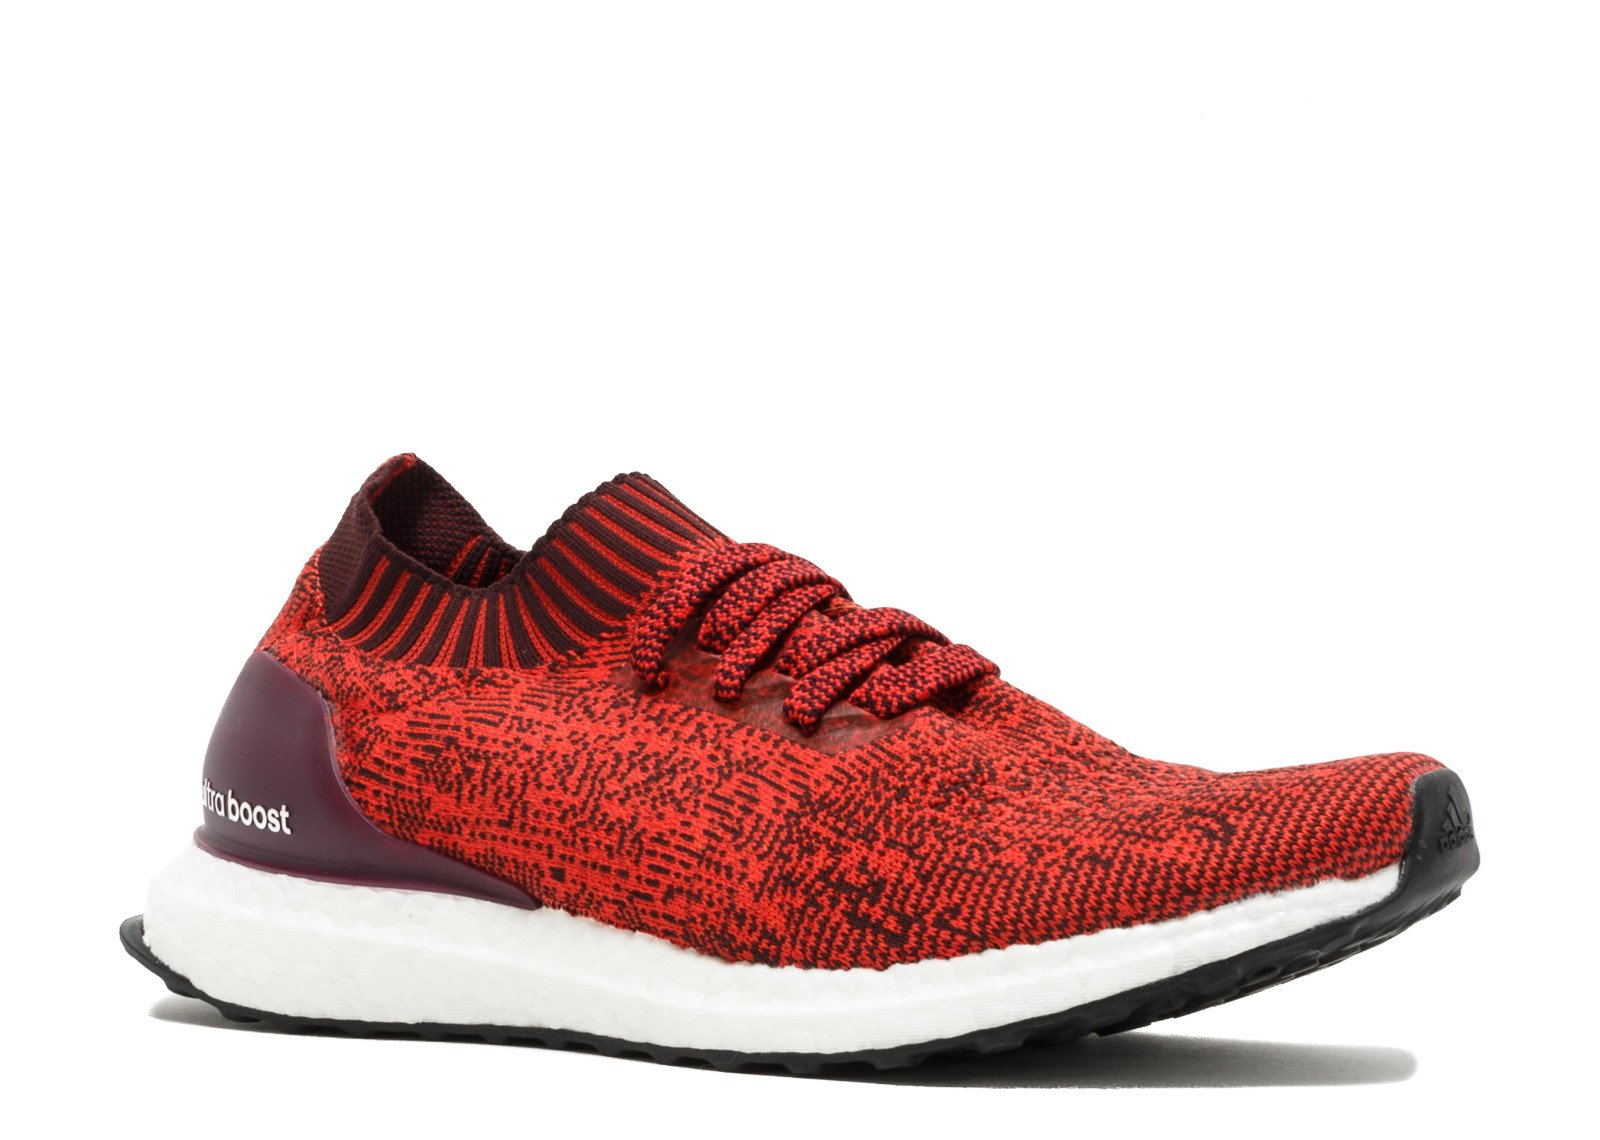 c92fa4295 Galleon - Adidas Ultraboost Uncaged Men s Running Shoes Dark Burgundy Tactile  Red By2554 (8 D(M) US)